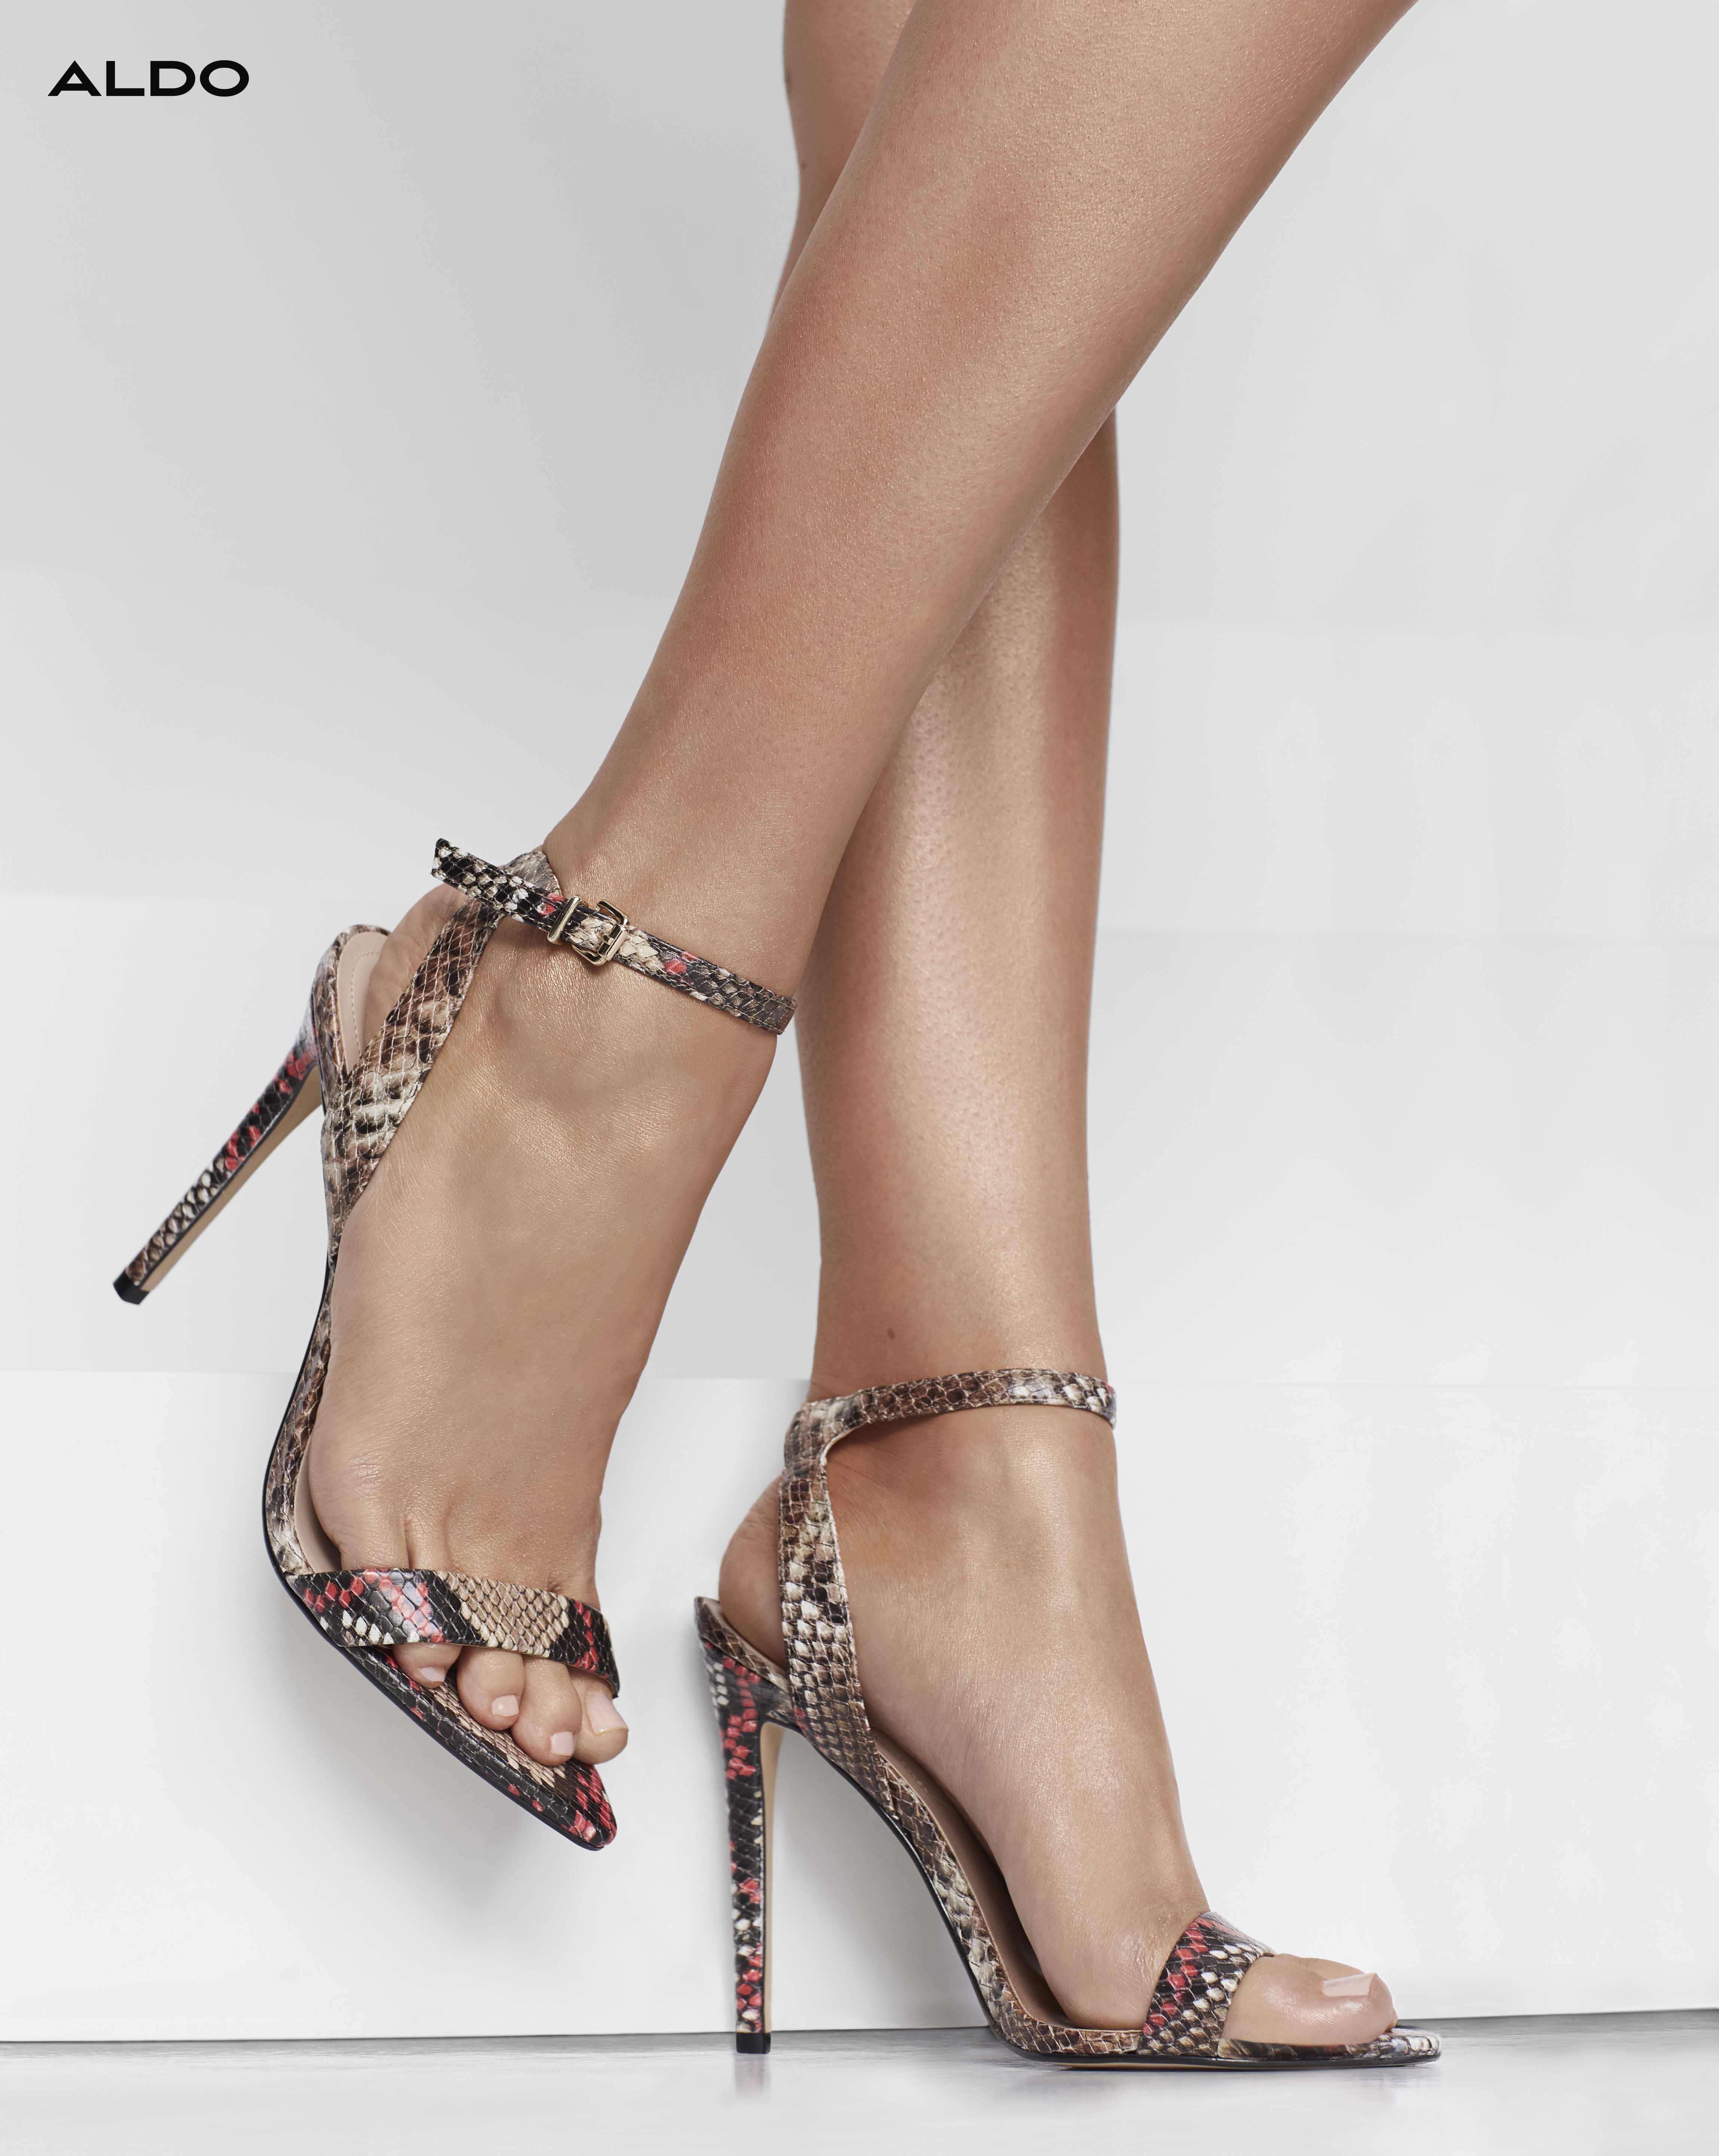 fb9e3427e2f Our Bravyan leather strappy sandal gets a trend-forward update with a  pointed-toe